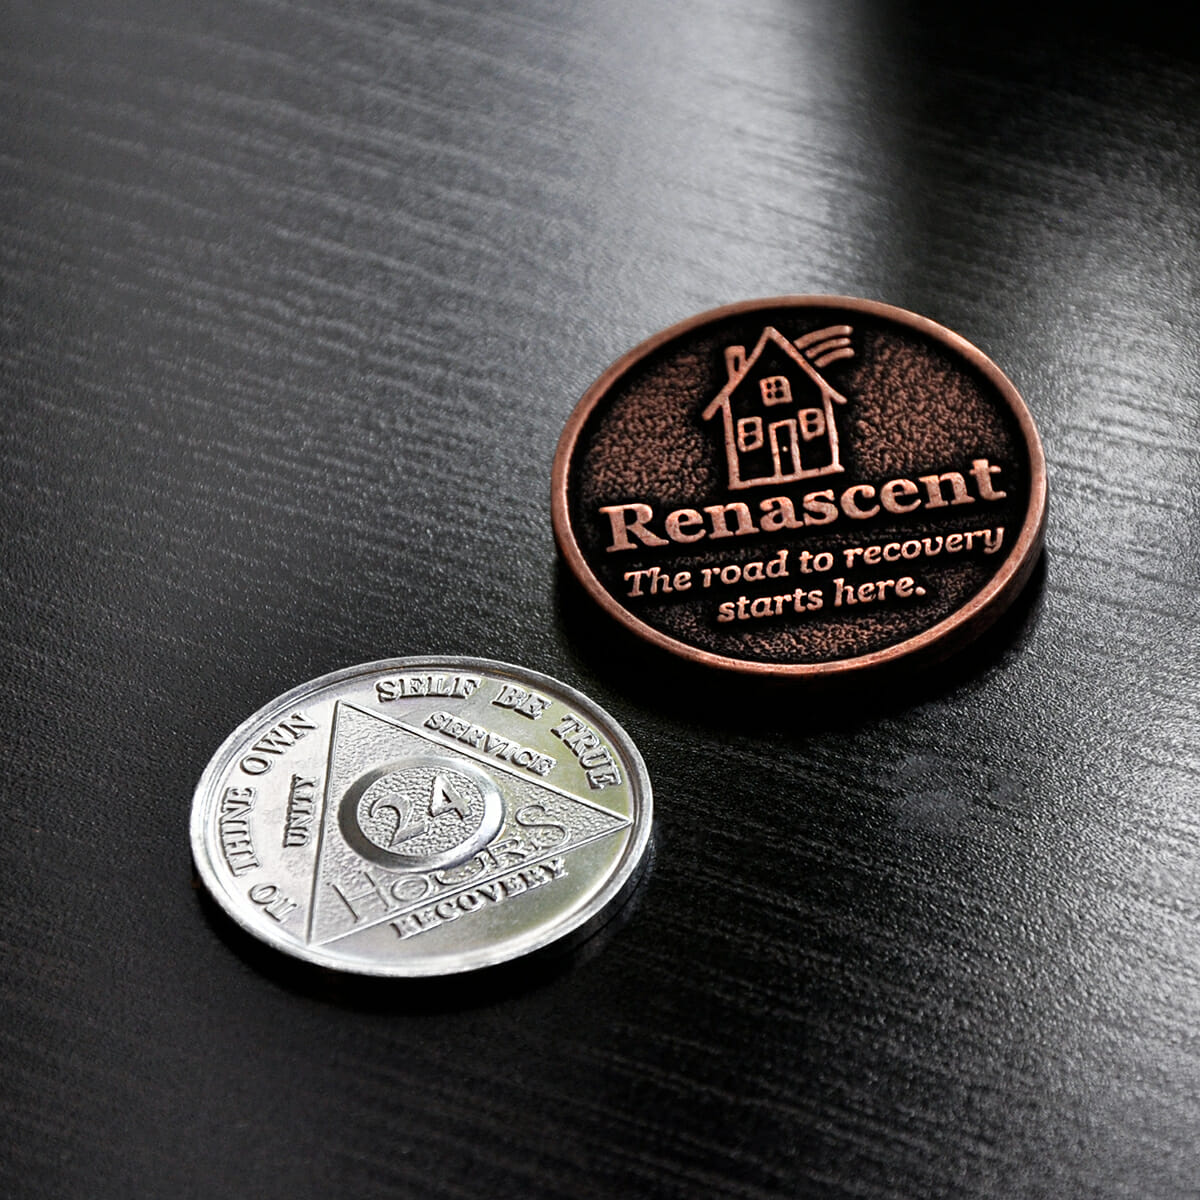 Renascent addiction recovery medallions.